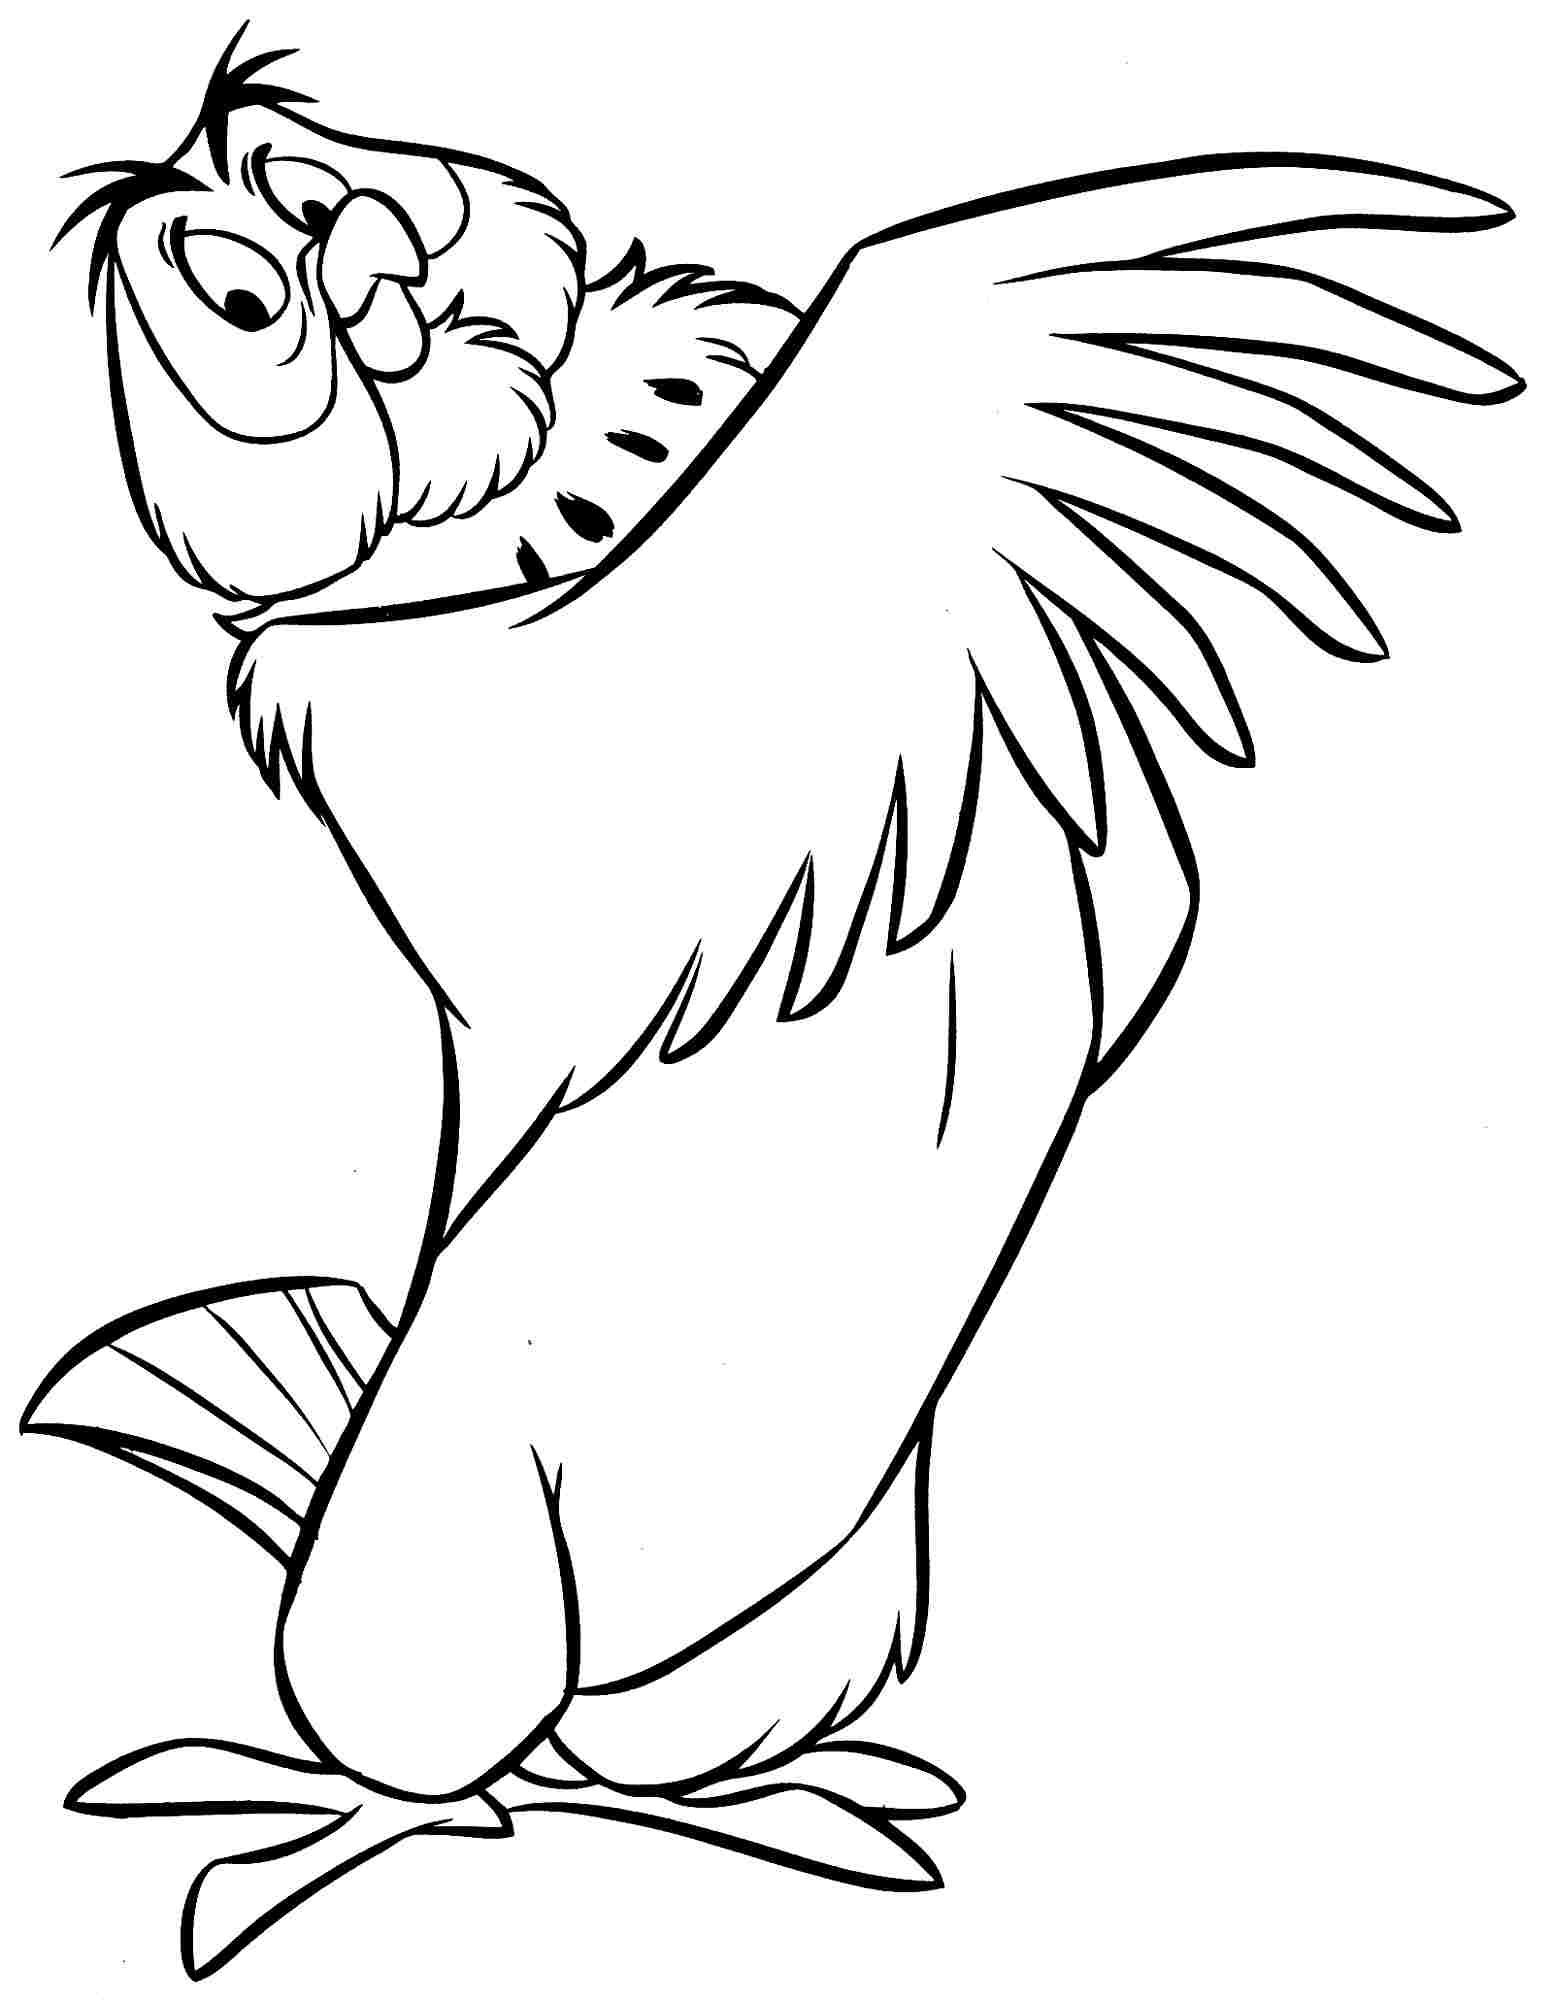 winnie-the-pooh-rabbit-coloring-pages-owl-outline-winnie-the-pooh